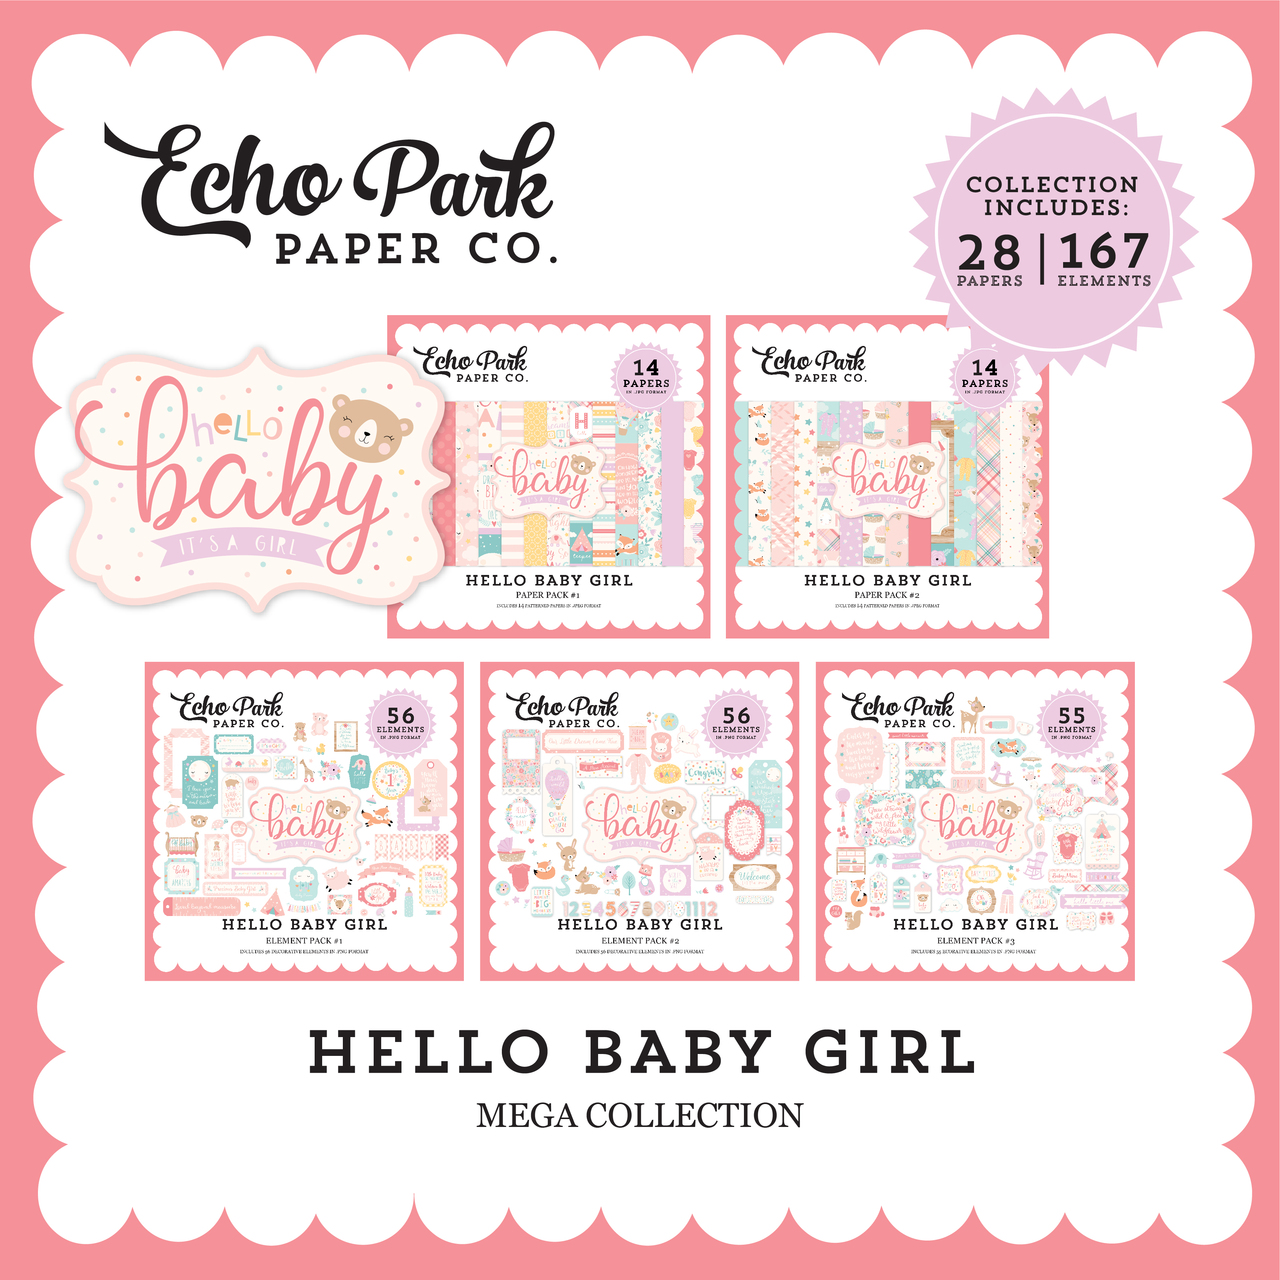 Hello Baby Girl Mega Collection